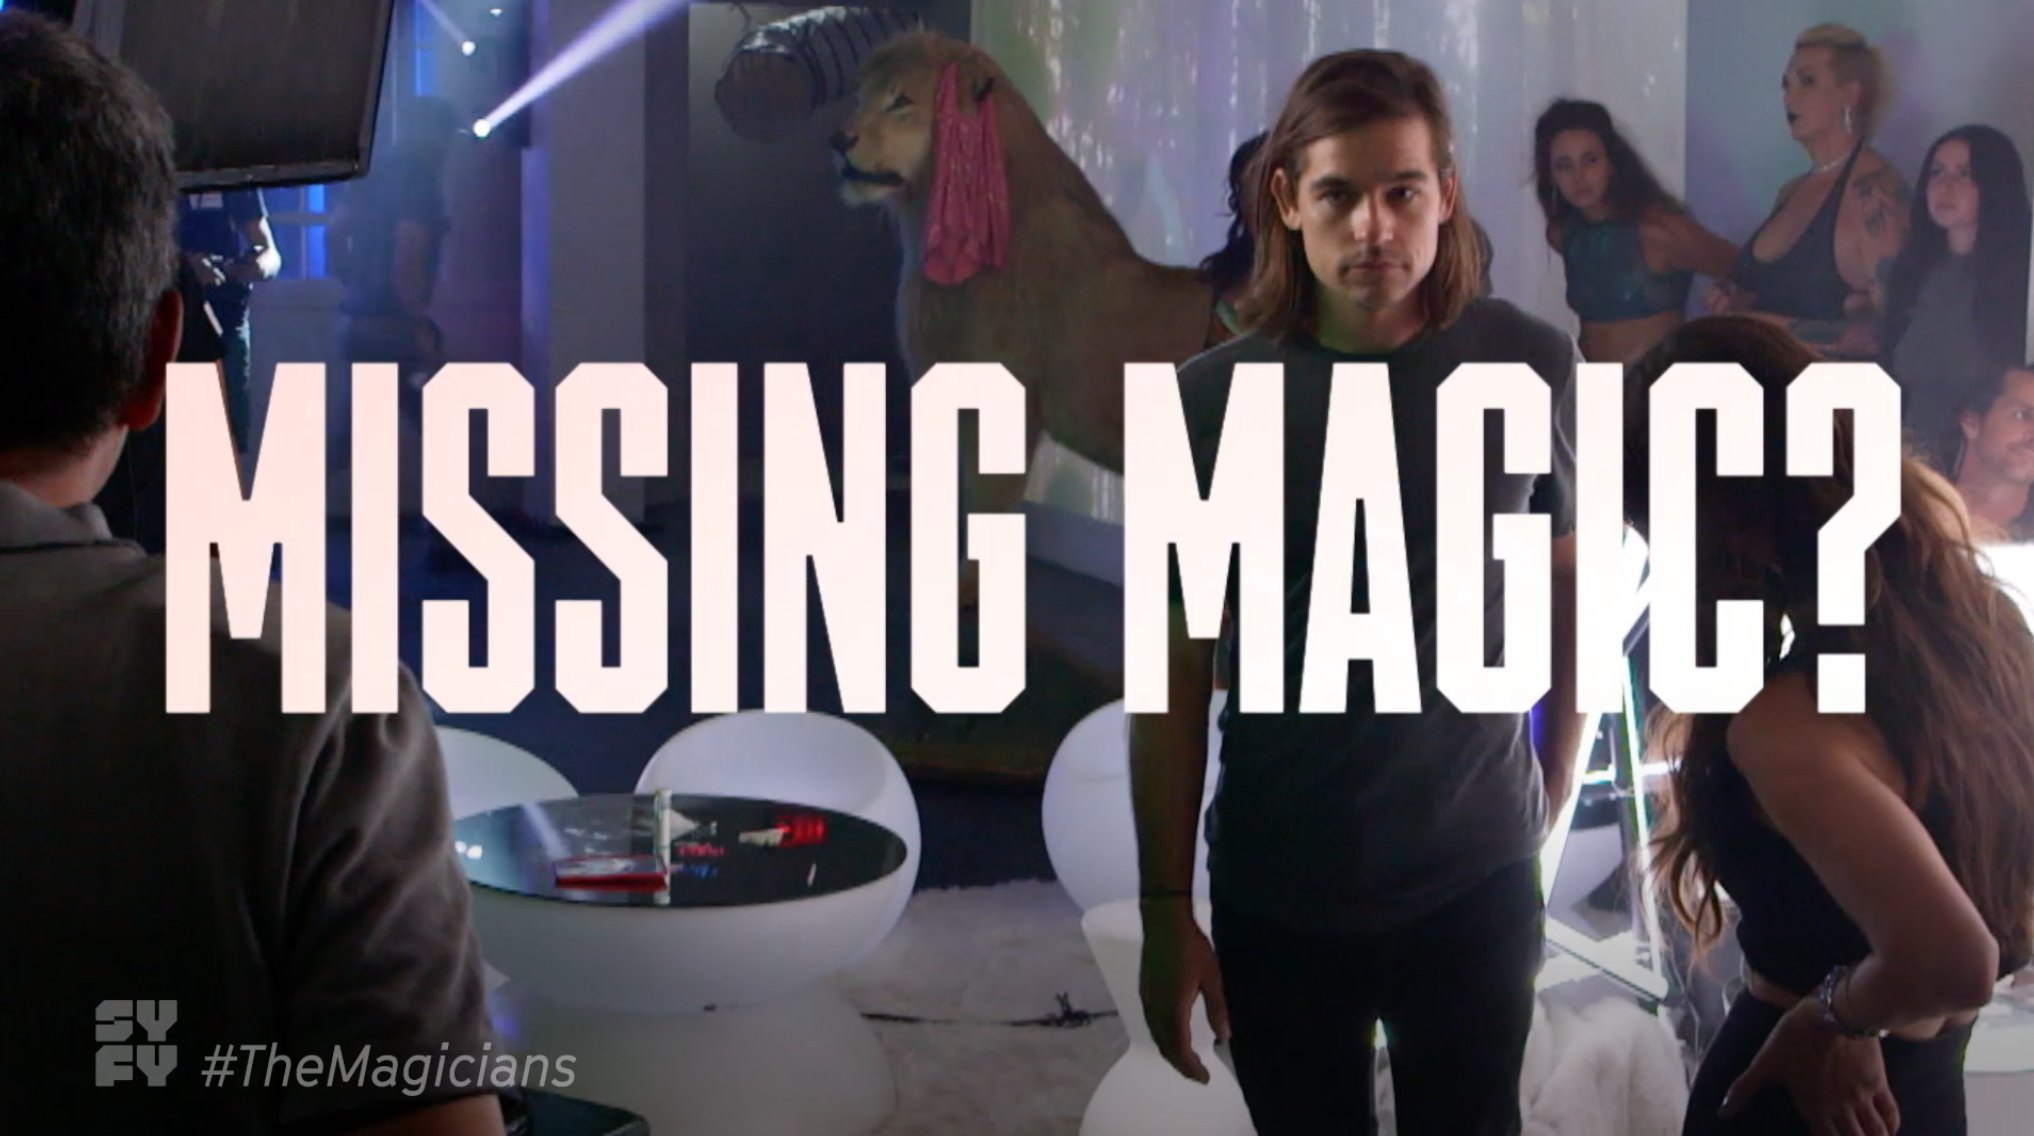 We lost magic, not our ability to throw epic parties �� �� #TheMagicians https://t.co/1XjEANtE01